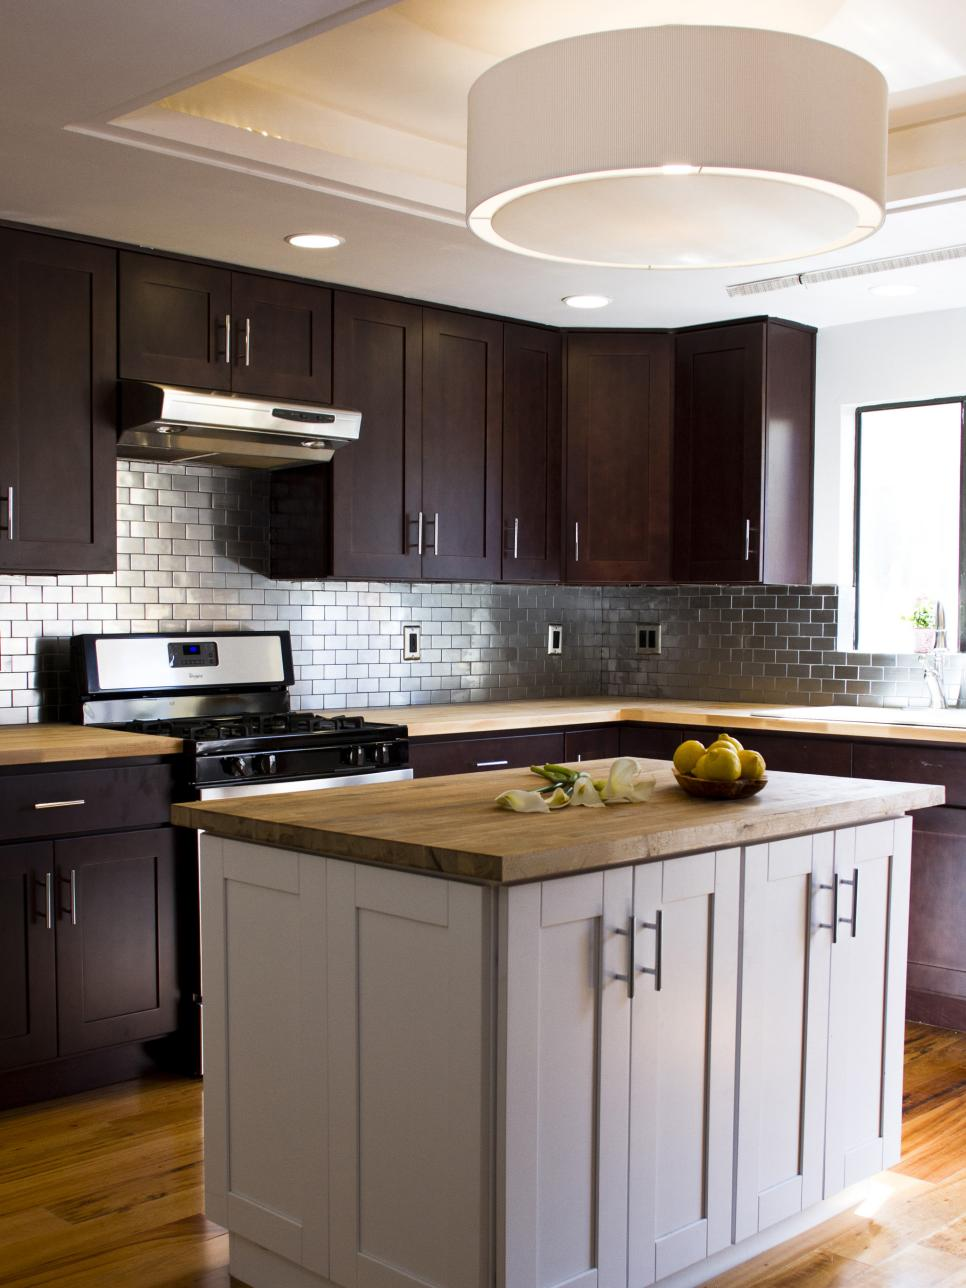 Best Way To Clean White Kitchen Appliances